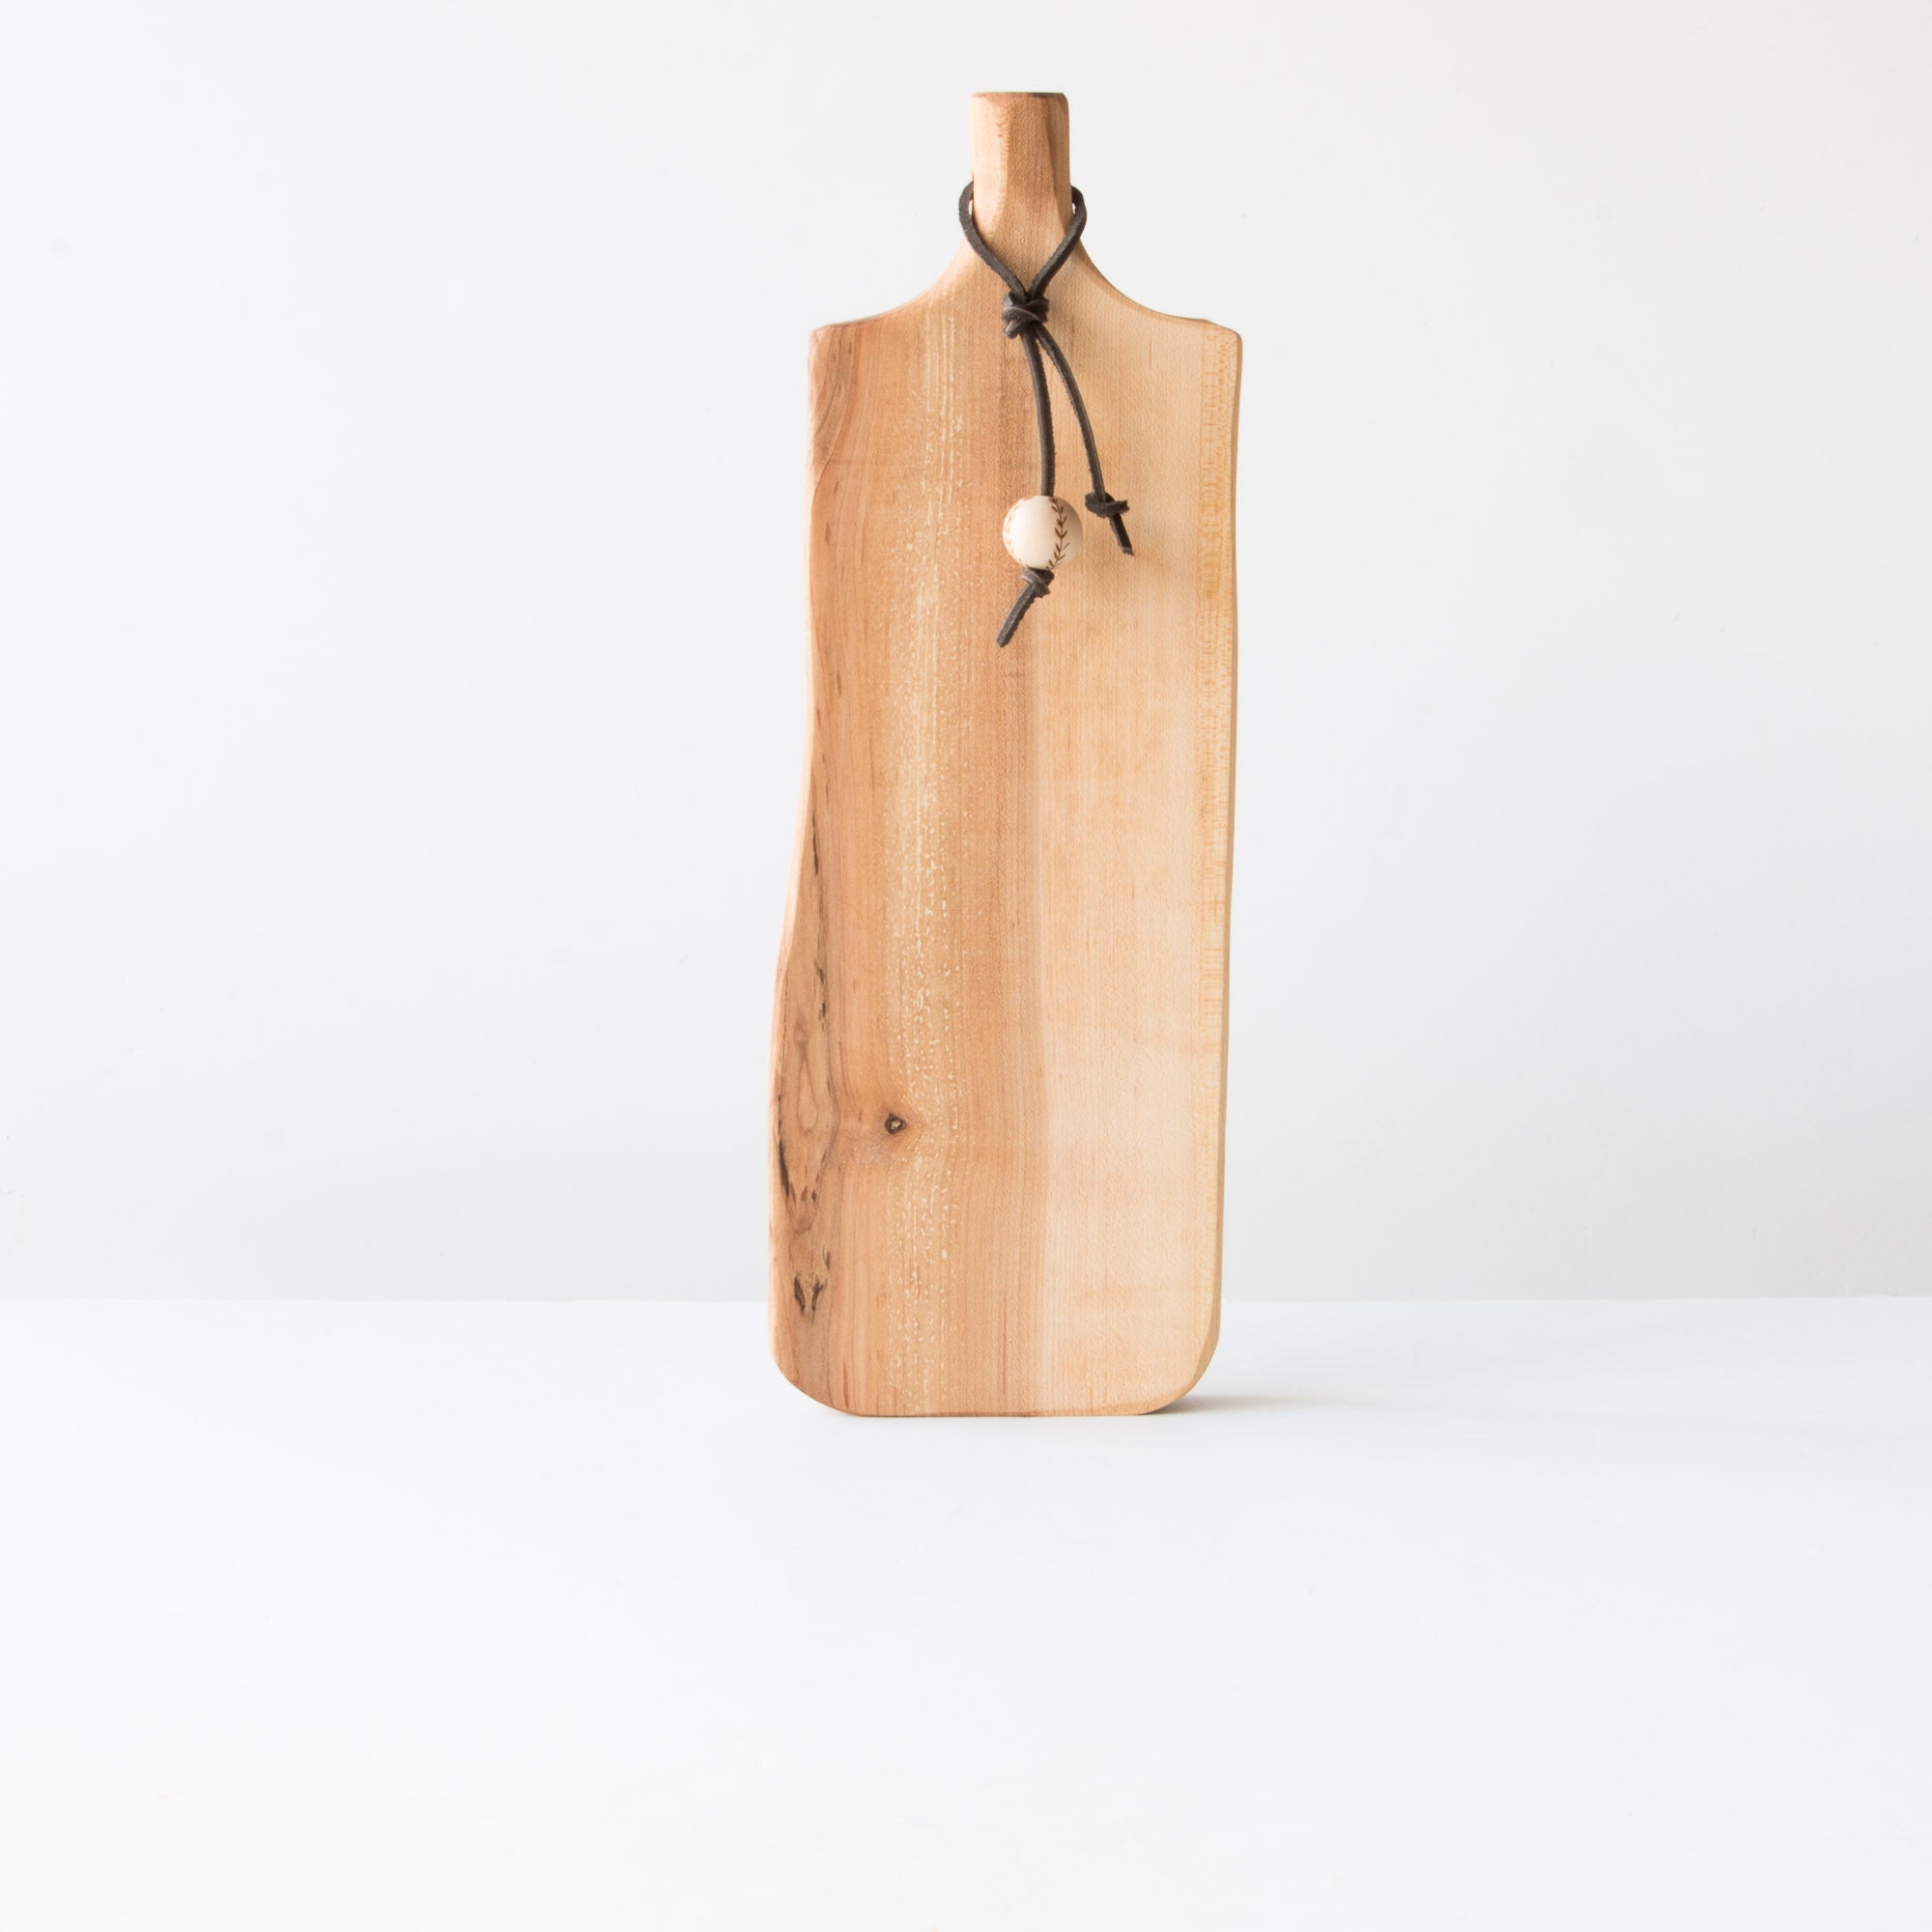 Handmade Bread Cutting Board in Reclaimed Maple Wood - Sold by Chic & Basta